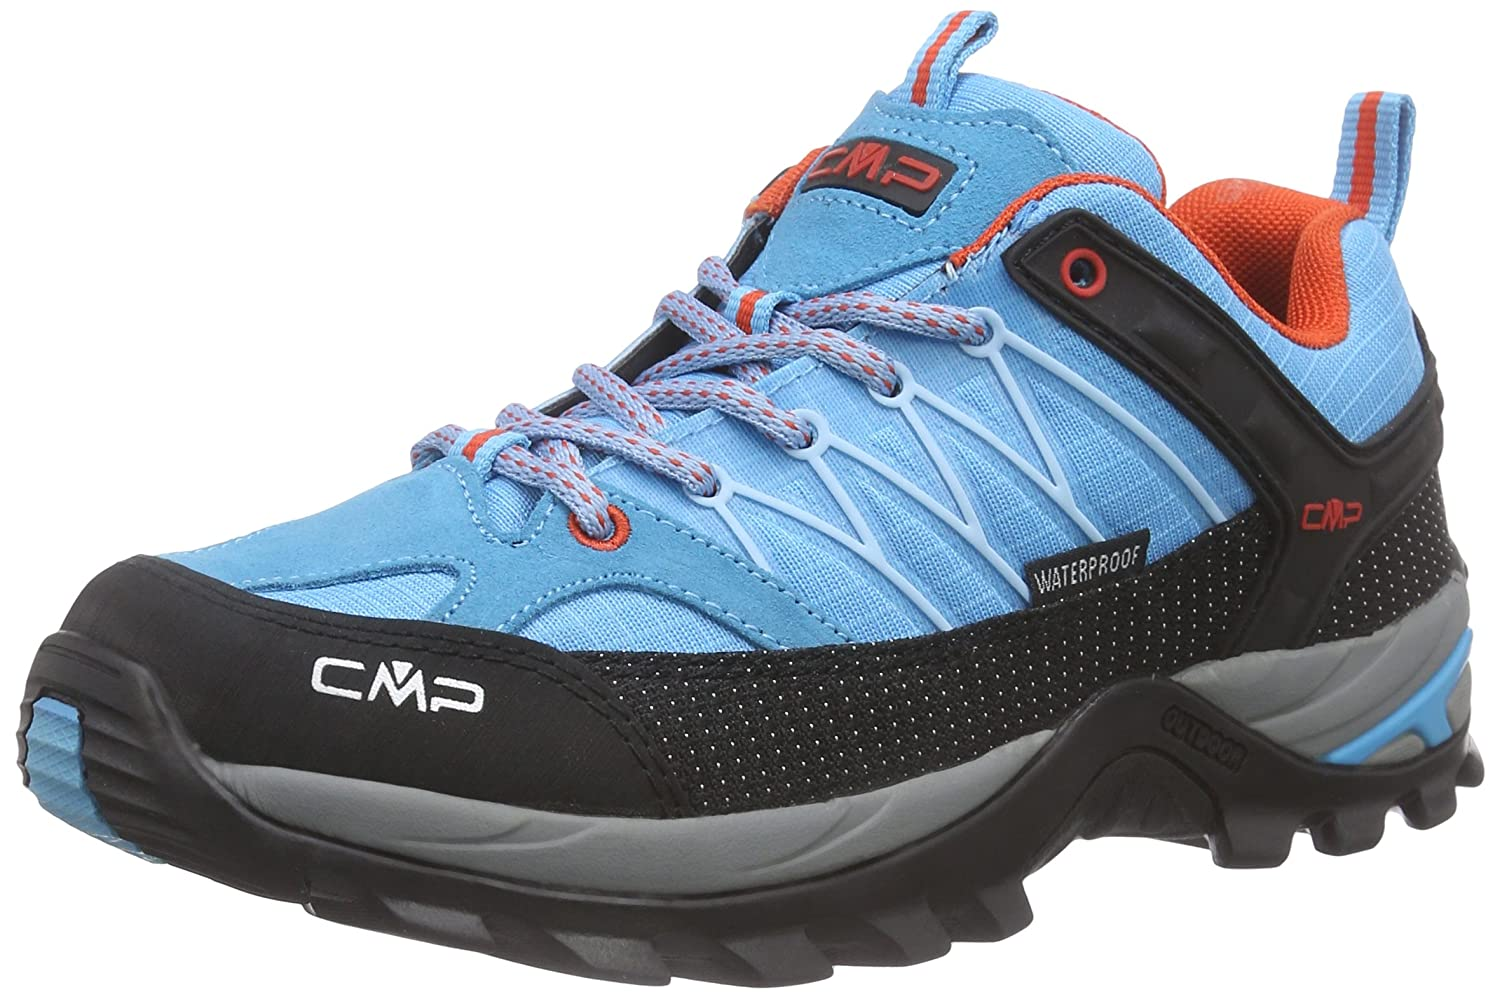 Womens Rigel Low Rise Hiking Shoes F.lli Campagnolo u9aXy3